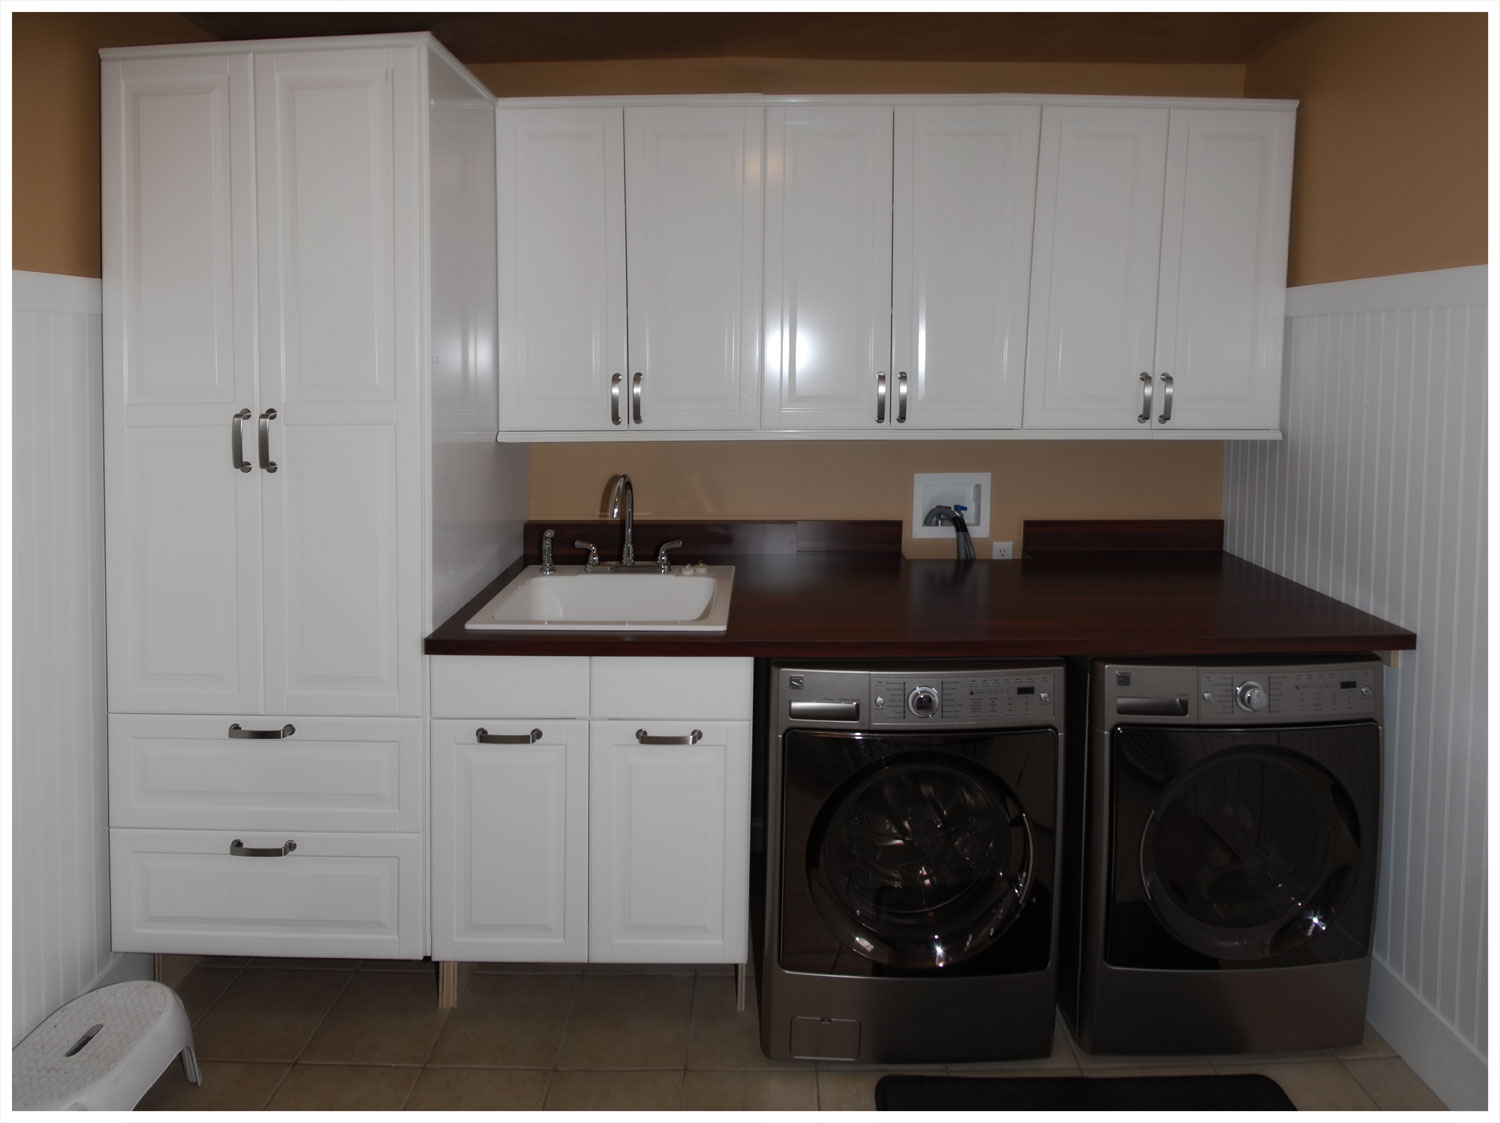 Taylor Family: New laundry room